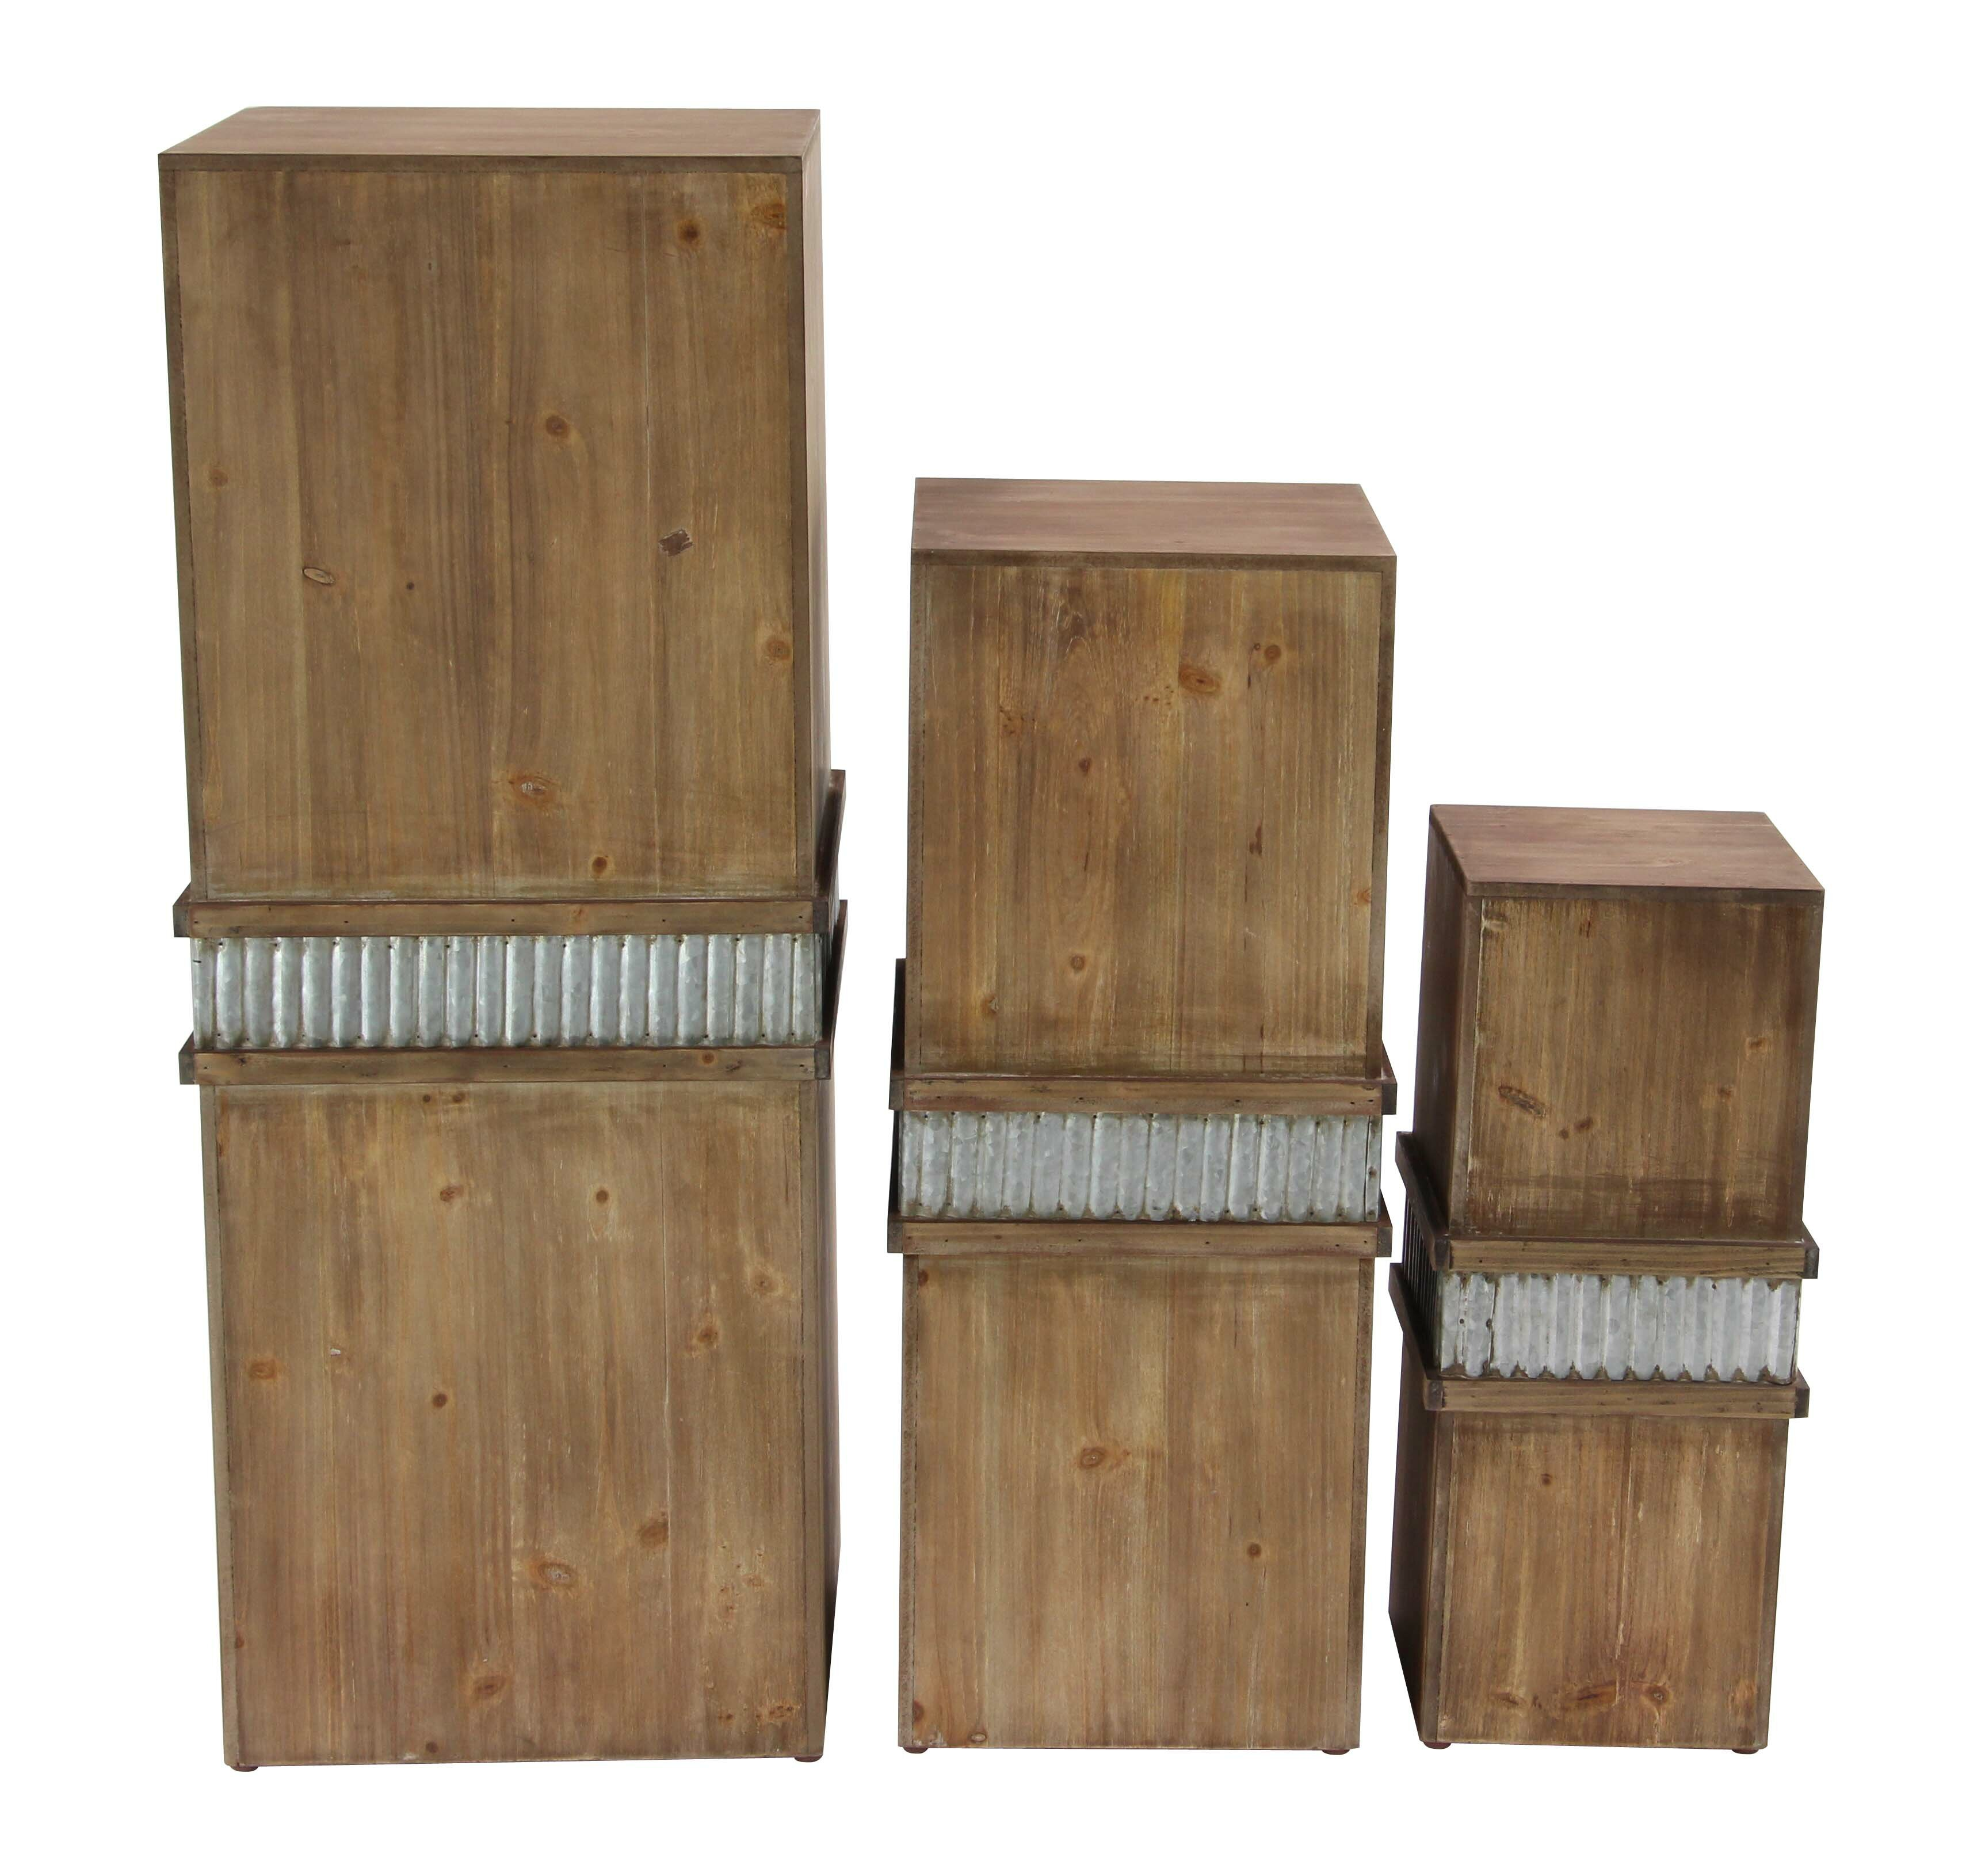 Rustic plant stands tables youll love wayfair alpha 3 piece rustic wood and iron square pedestal plant stand set floridaeventfo Images